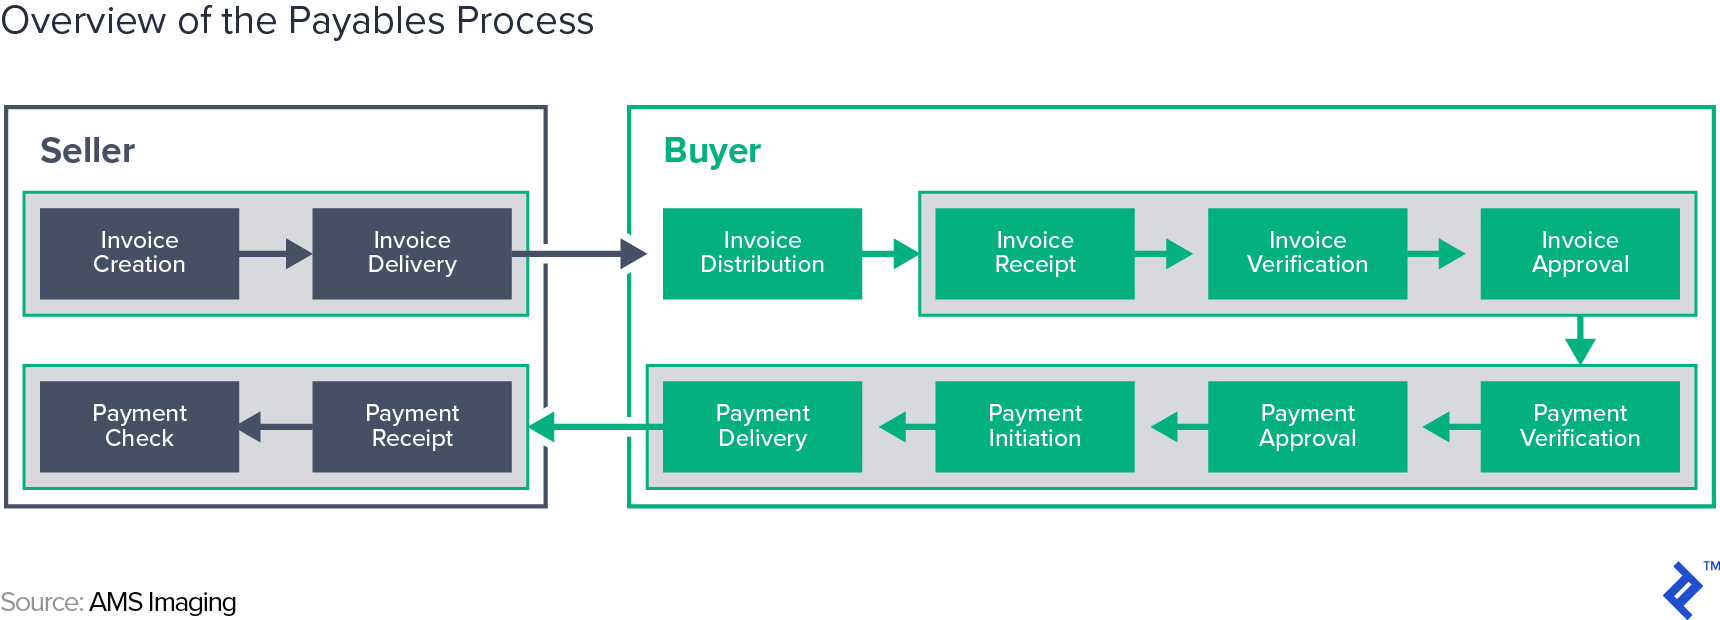 Overview of the Payables Process - Source: AMS Imaging